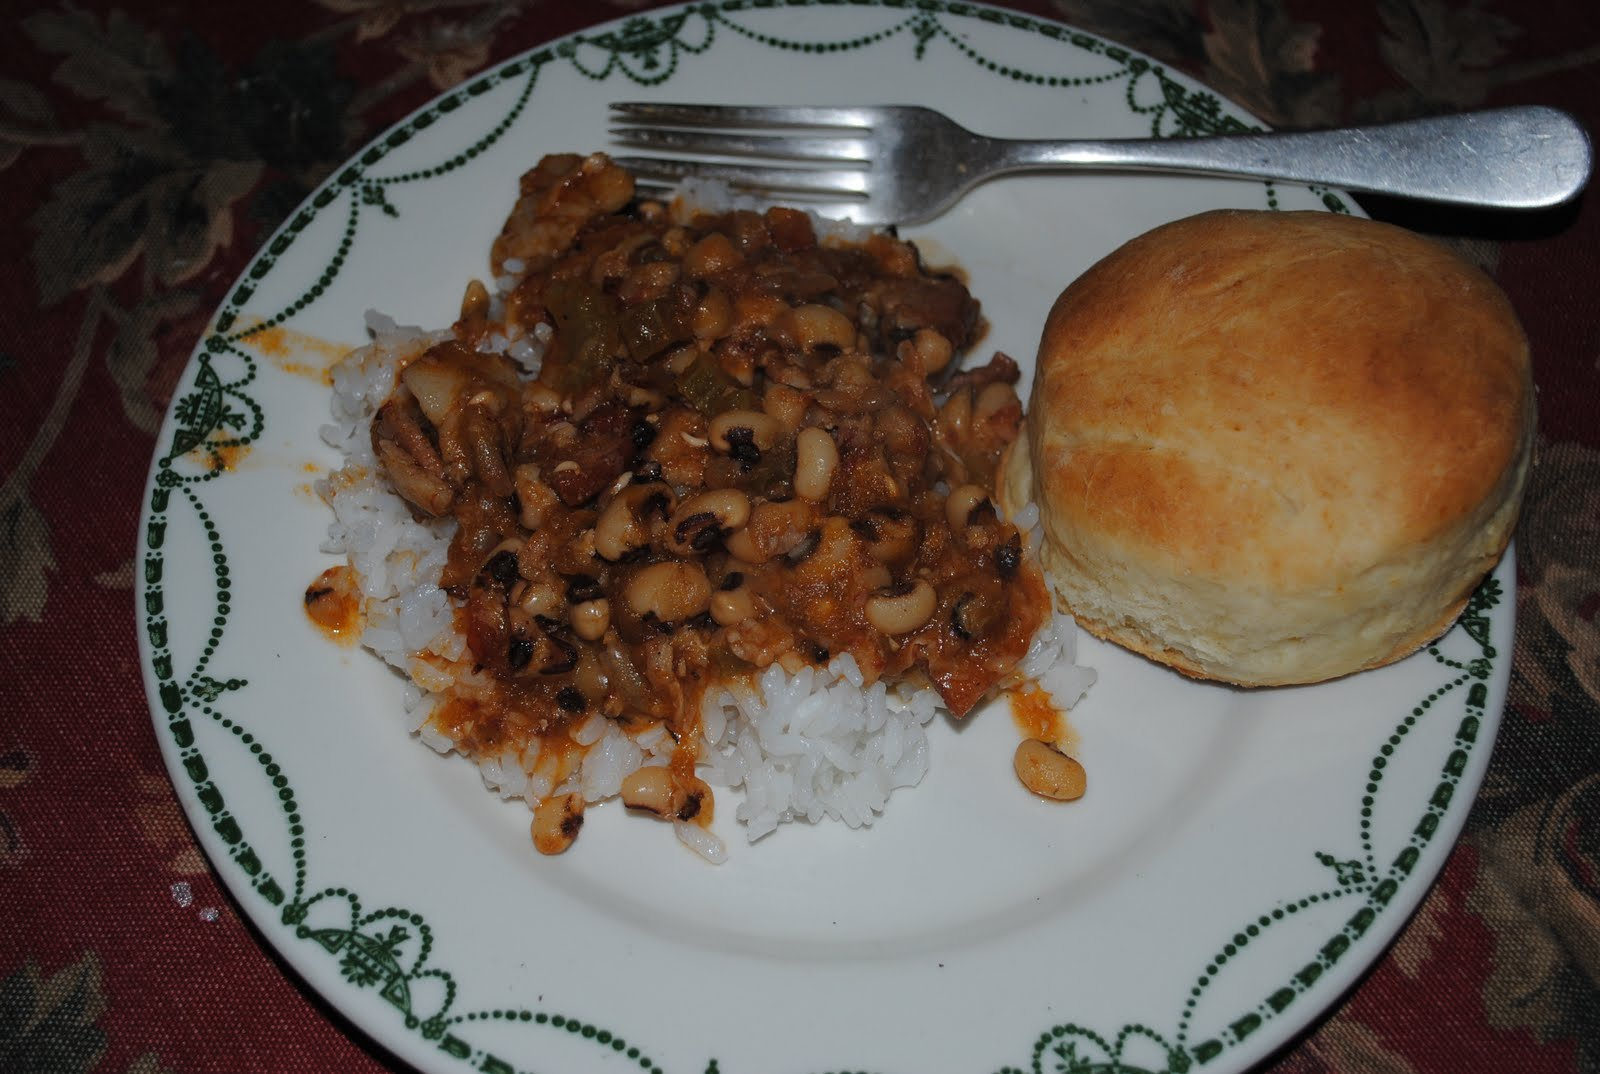 Paratus familia blog hoppin john and southern raised biscuits due to the fact that beans comprise a large part of our stored foods i am always on the lookout for a good bean recipe one of our all time favorite beans forumfinder Images